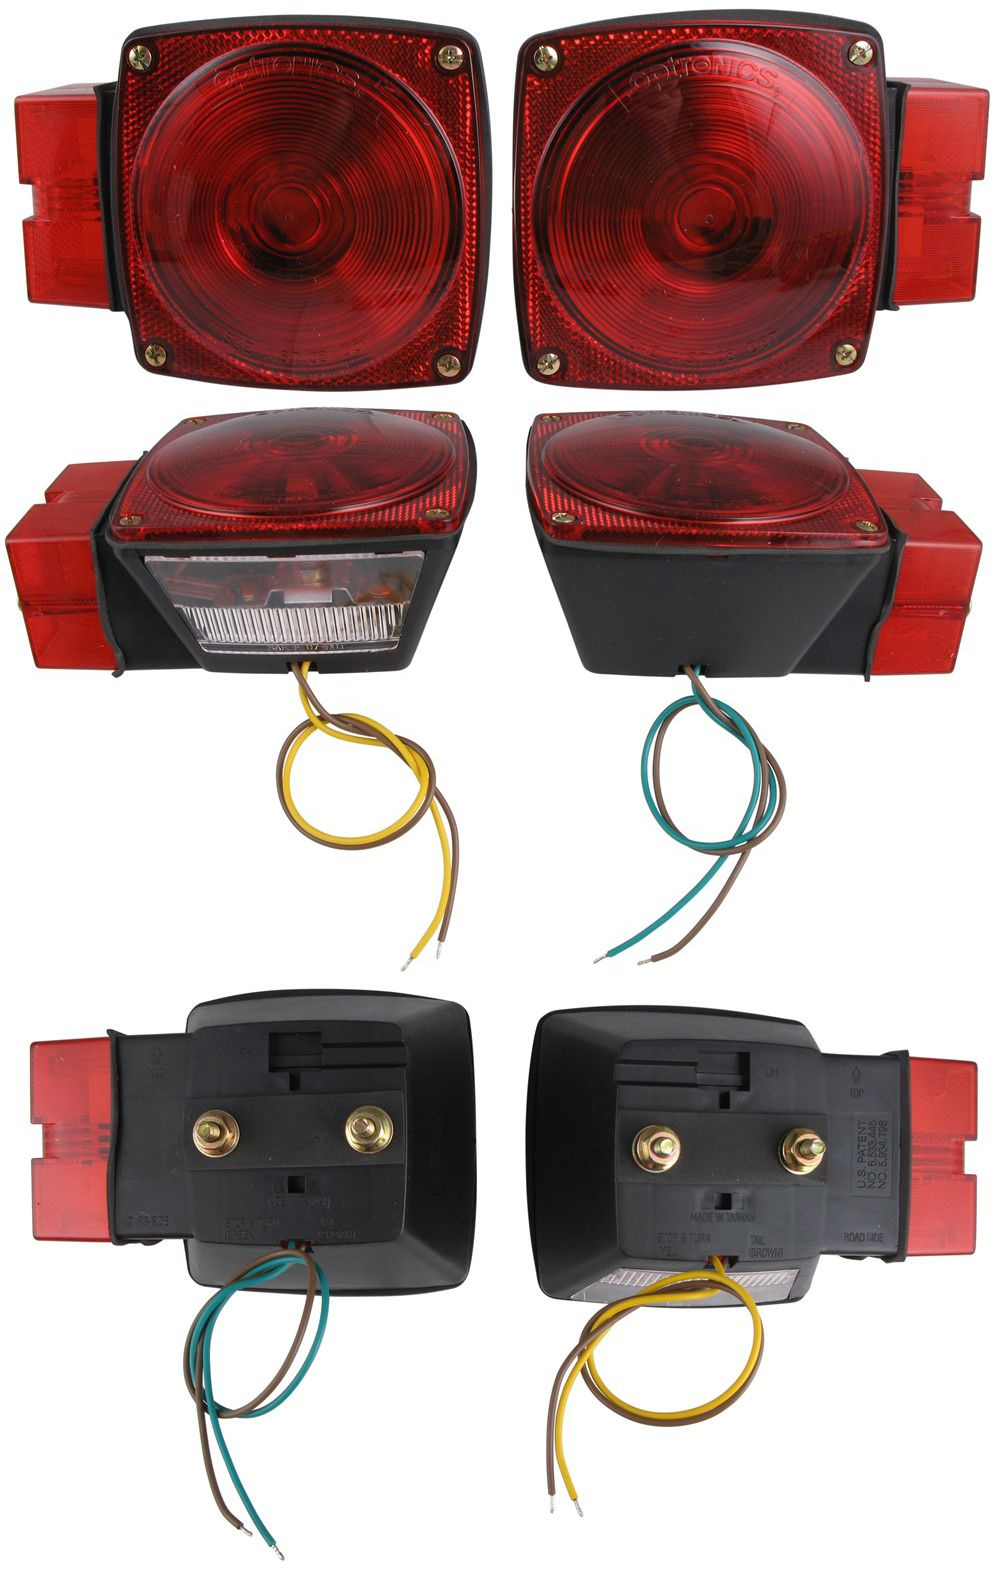 Red Submersible Trailer Light Kit With Stud Mount Lights License Harness Bracket Wiring